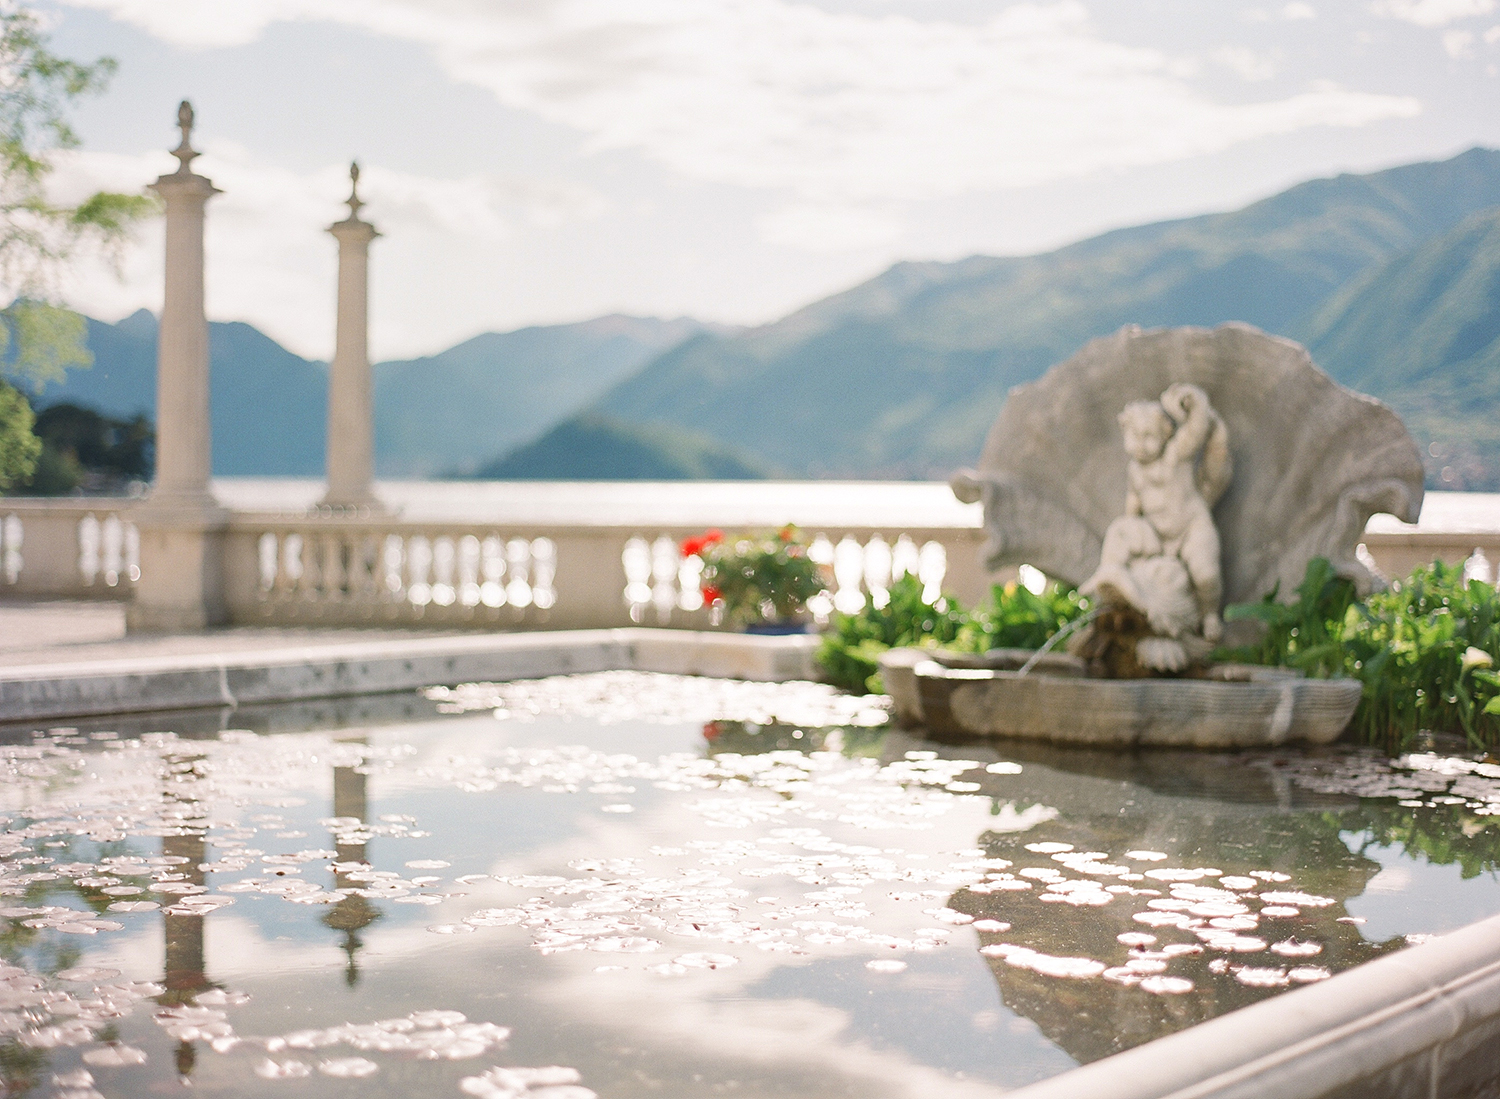 lake_como_wedding_photographer_italy_villa_melzi_film_wedding_nikol_bodnarova_photography_05.jpg